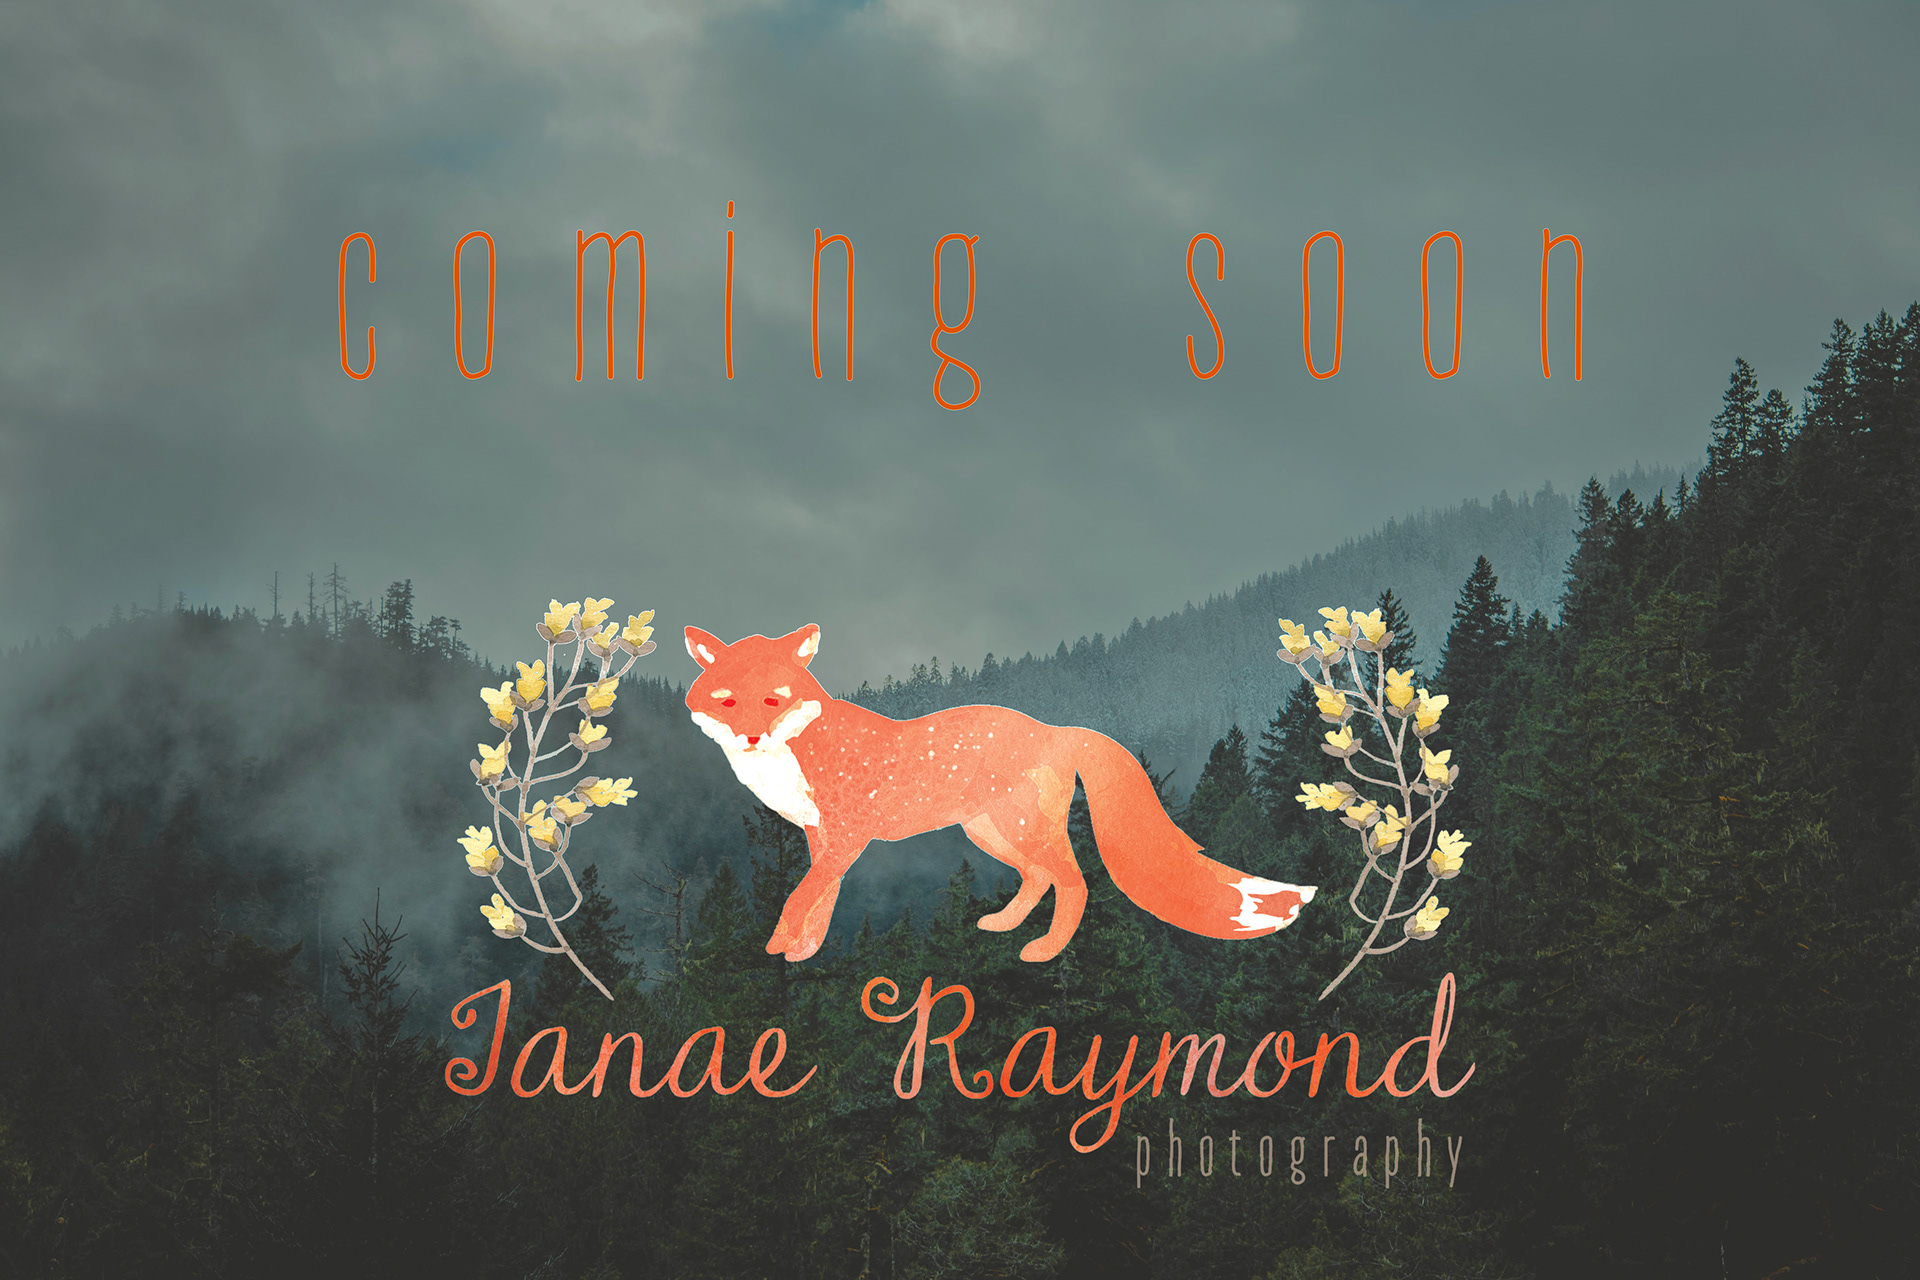 Logo for Janae Raymond Photography